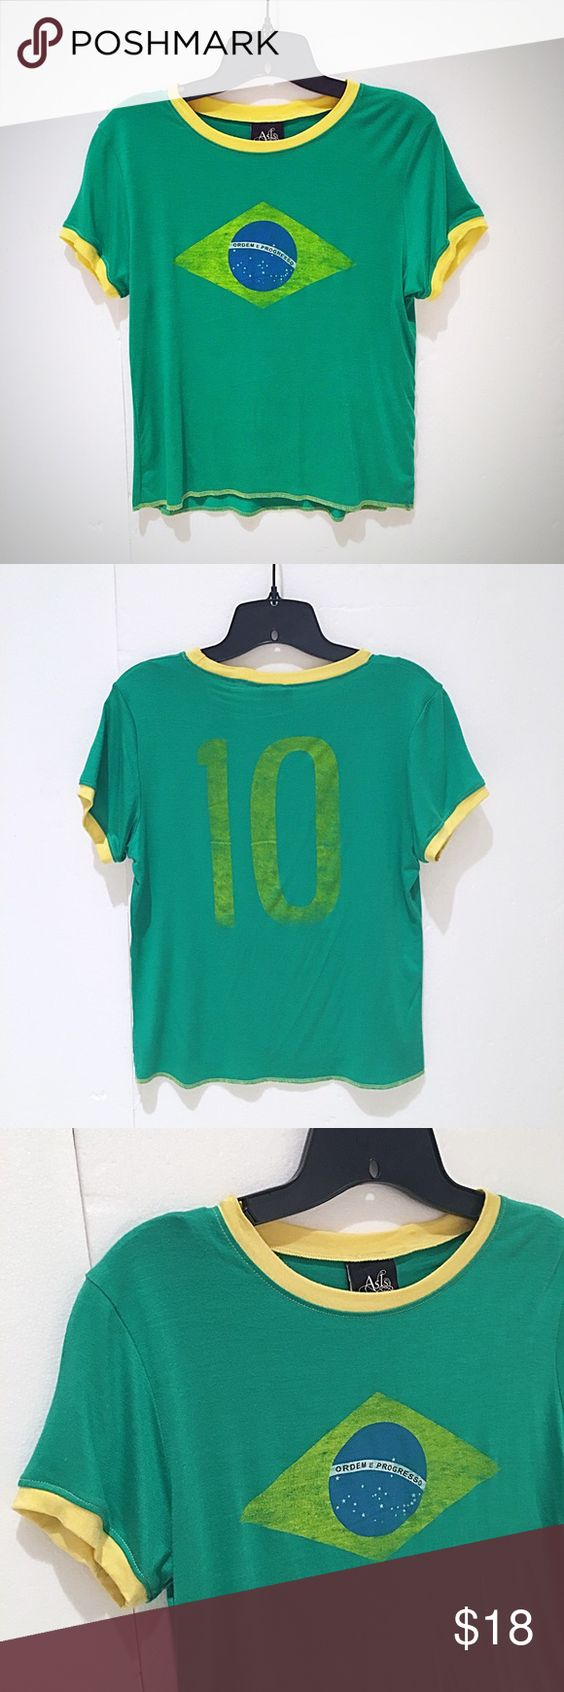 Vintage Green Ringer Tee Made by As-Is. Unique Green Ringer Tee with Brazilian Flag. Intentional faded screen-print design front & back for a vintage look. Yellow accented trim. Contrast surge-stitched hem at bottom. Has a slight cropped fit to it, but depending on size, may hit exactly at upper waist for a size XS or S. 95%Cotton, 5%Spandex, machine wash gentle, lay flat to dry. Very lightweight smooth cotton feel fabric with plenty of stretch, so yes-if your a Med & want it tight, it'll…